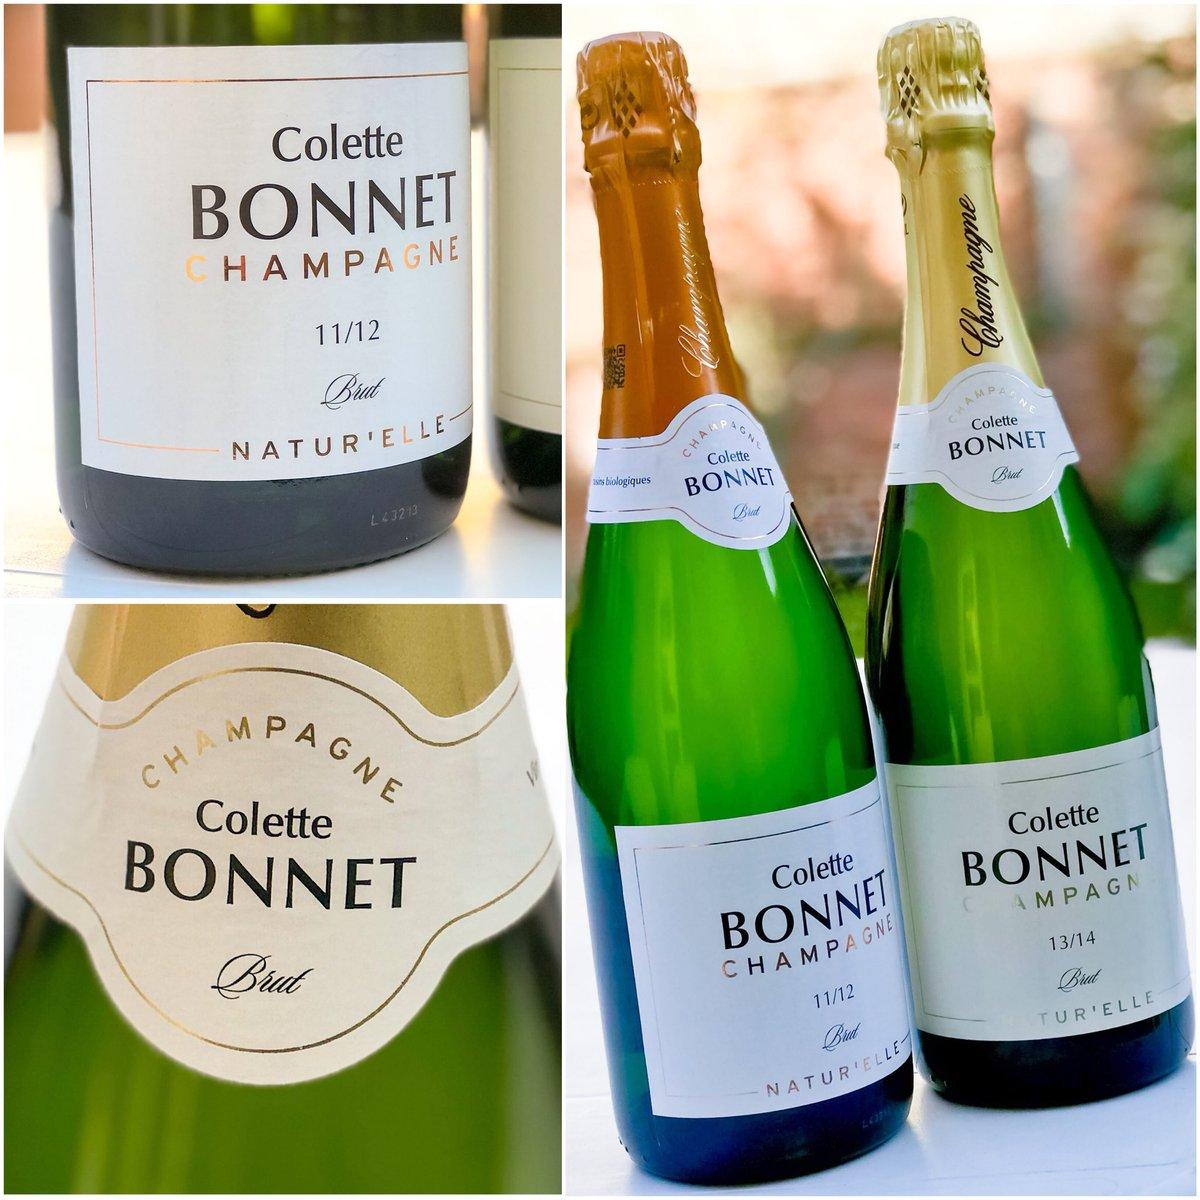 Very much looking forward to tasting these #champagnes by @ColetteBonnet from the #cotedesbar area of #champagne. One in particular with a #homemade dish this evening, so #watchthisspace  #mercibeaucoup Mme. Colette!<br>http://pic.twitter.com/FotONdDsJP